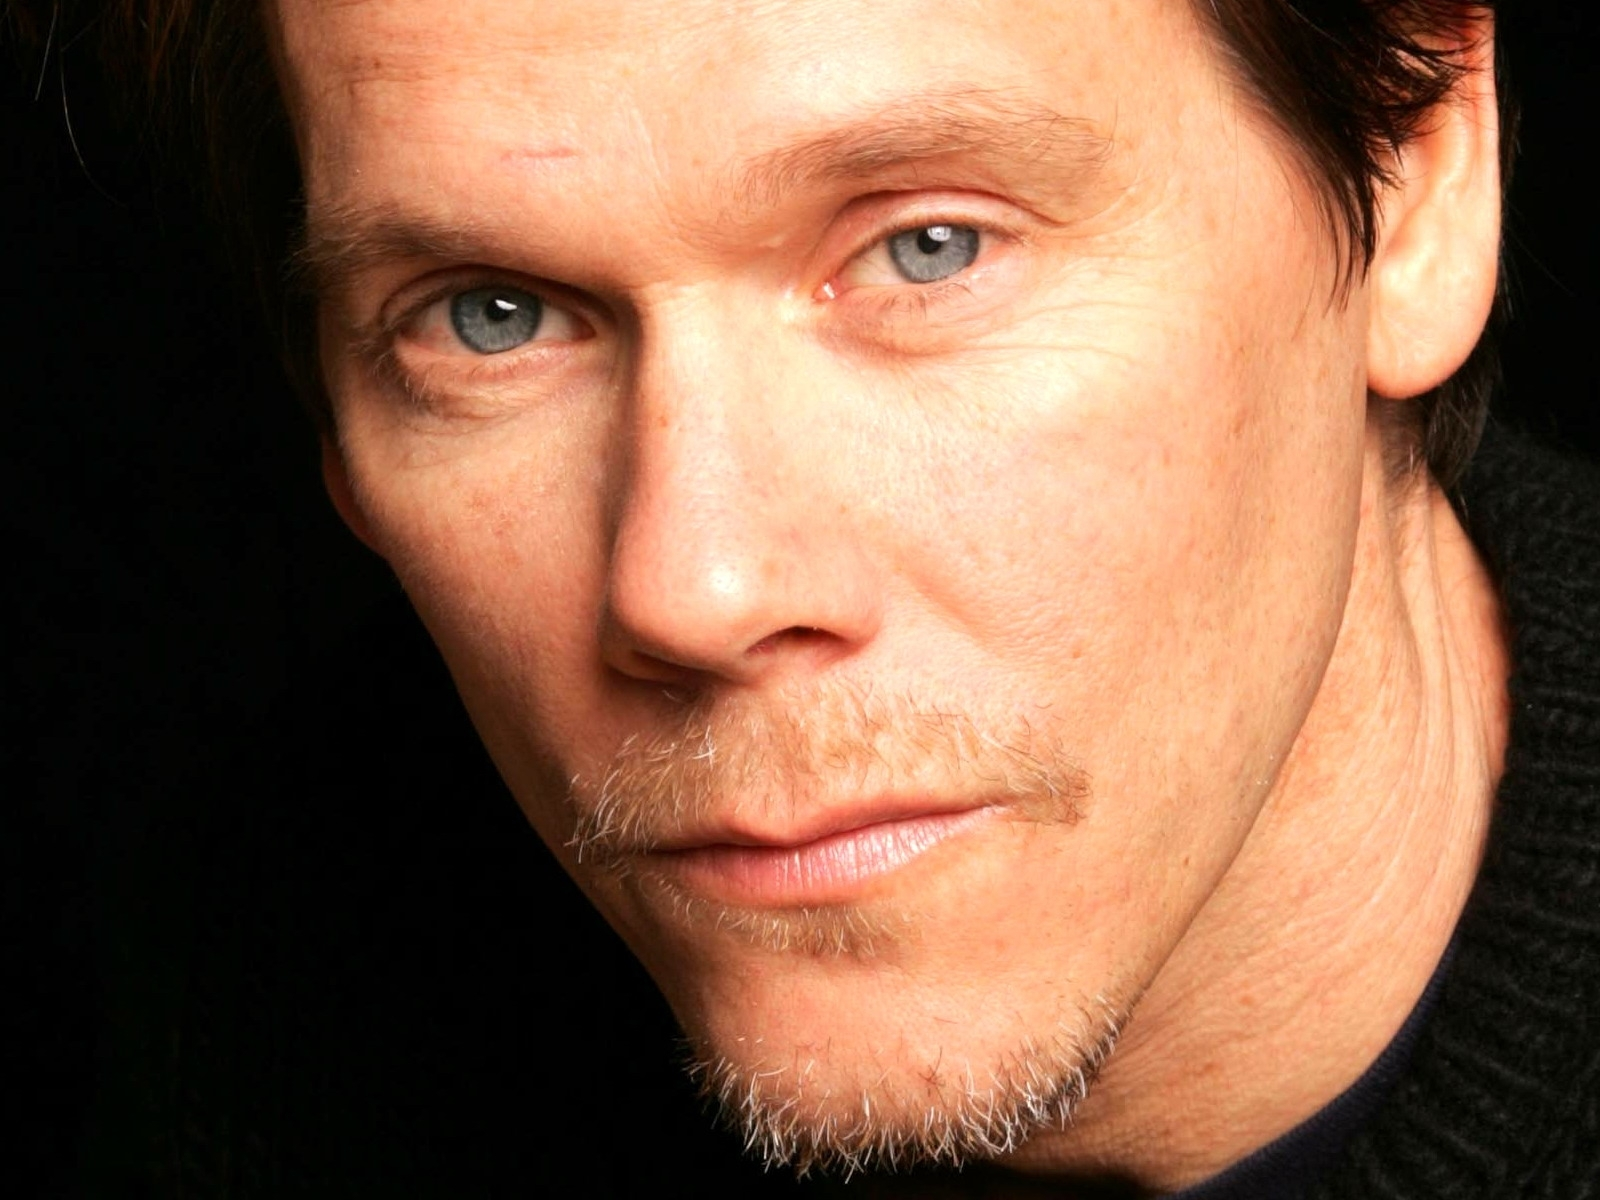 Kevin Bacon wallpaper 1600x1200 63434 1600x1200